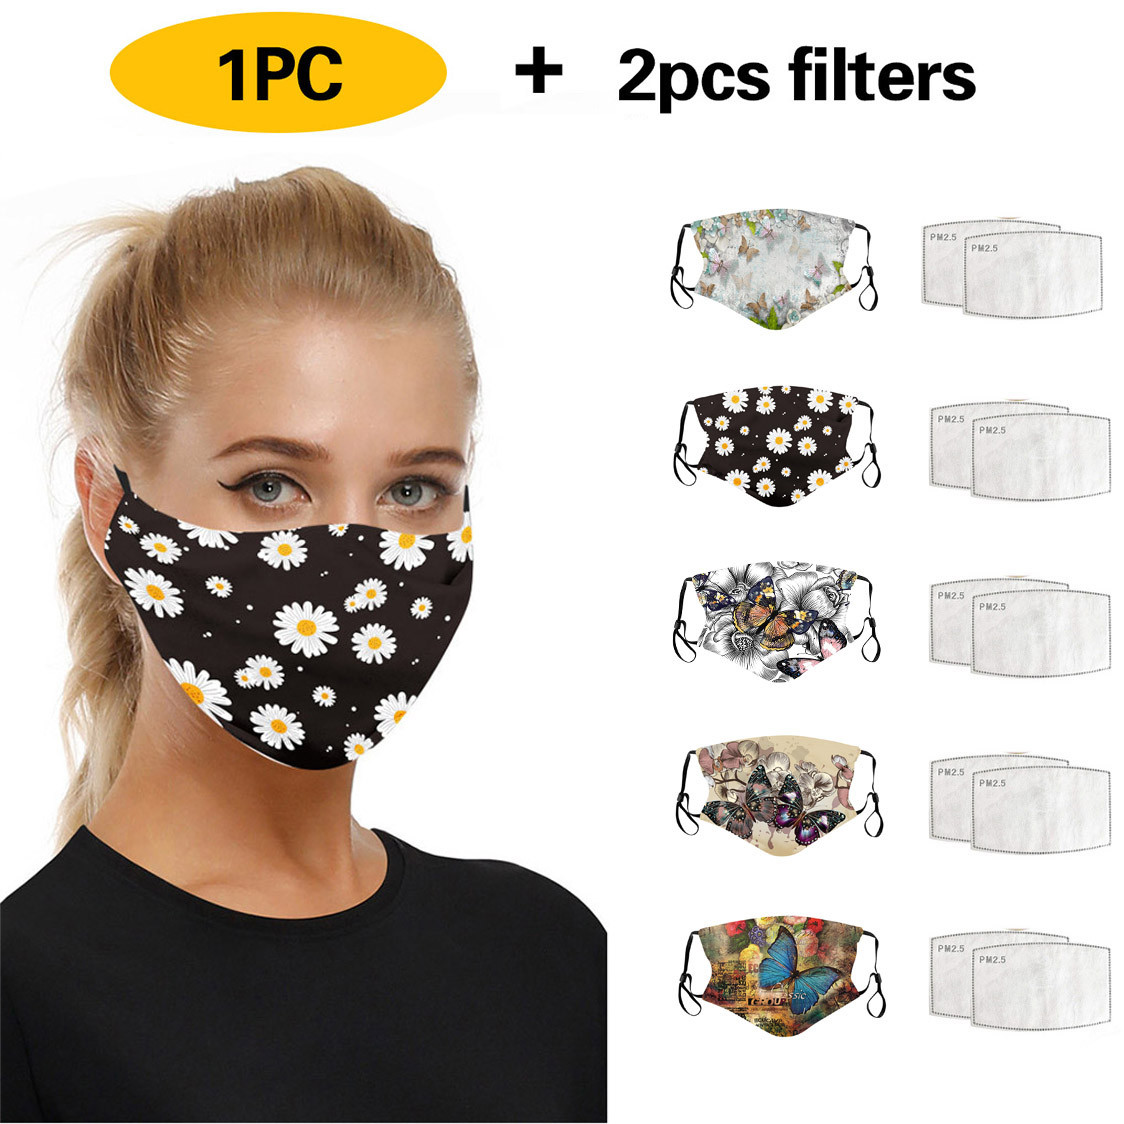 Funny Animal Printed Breathable Reusable Mask Filter PM2.5 Air Filtration Mask Protective Respirator Breathable Mascarillas